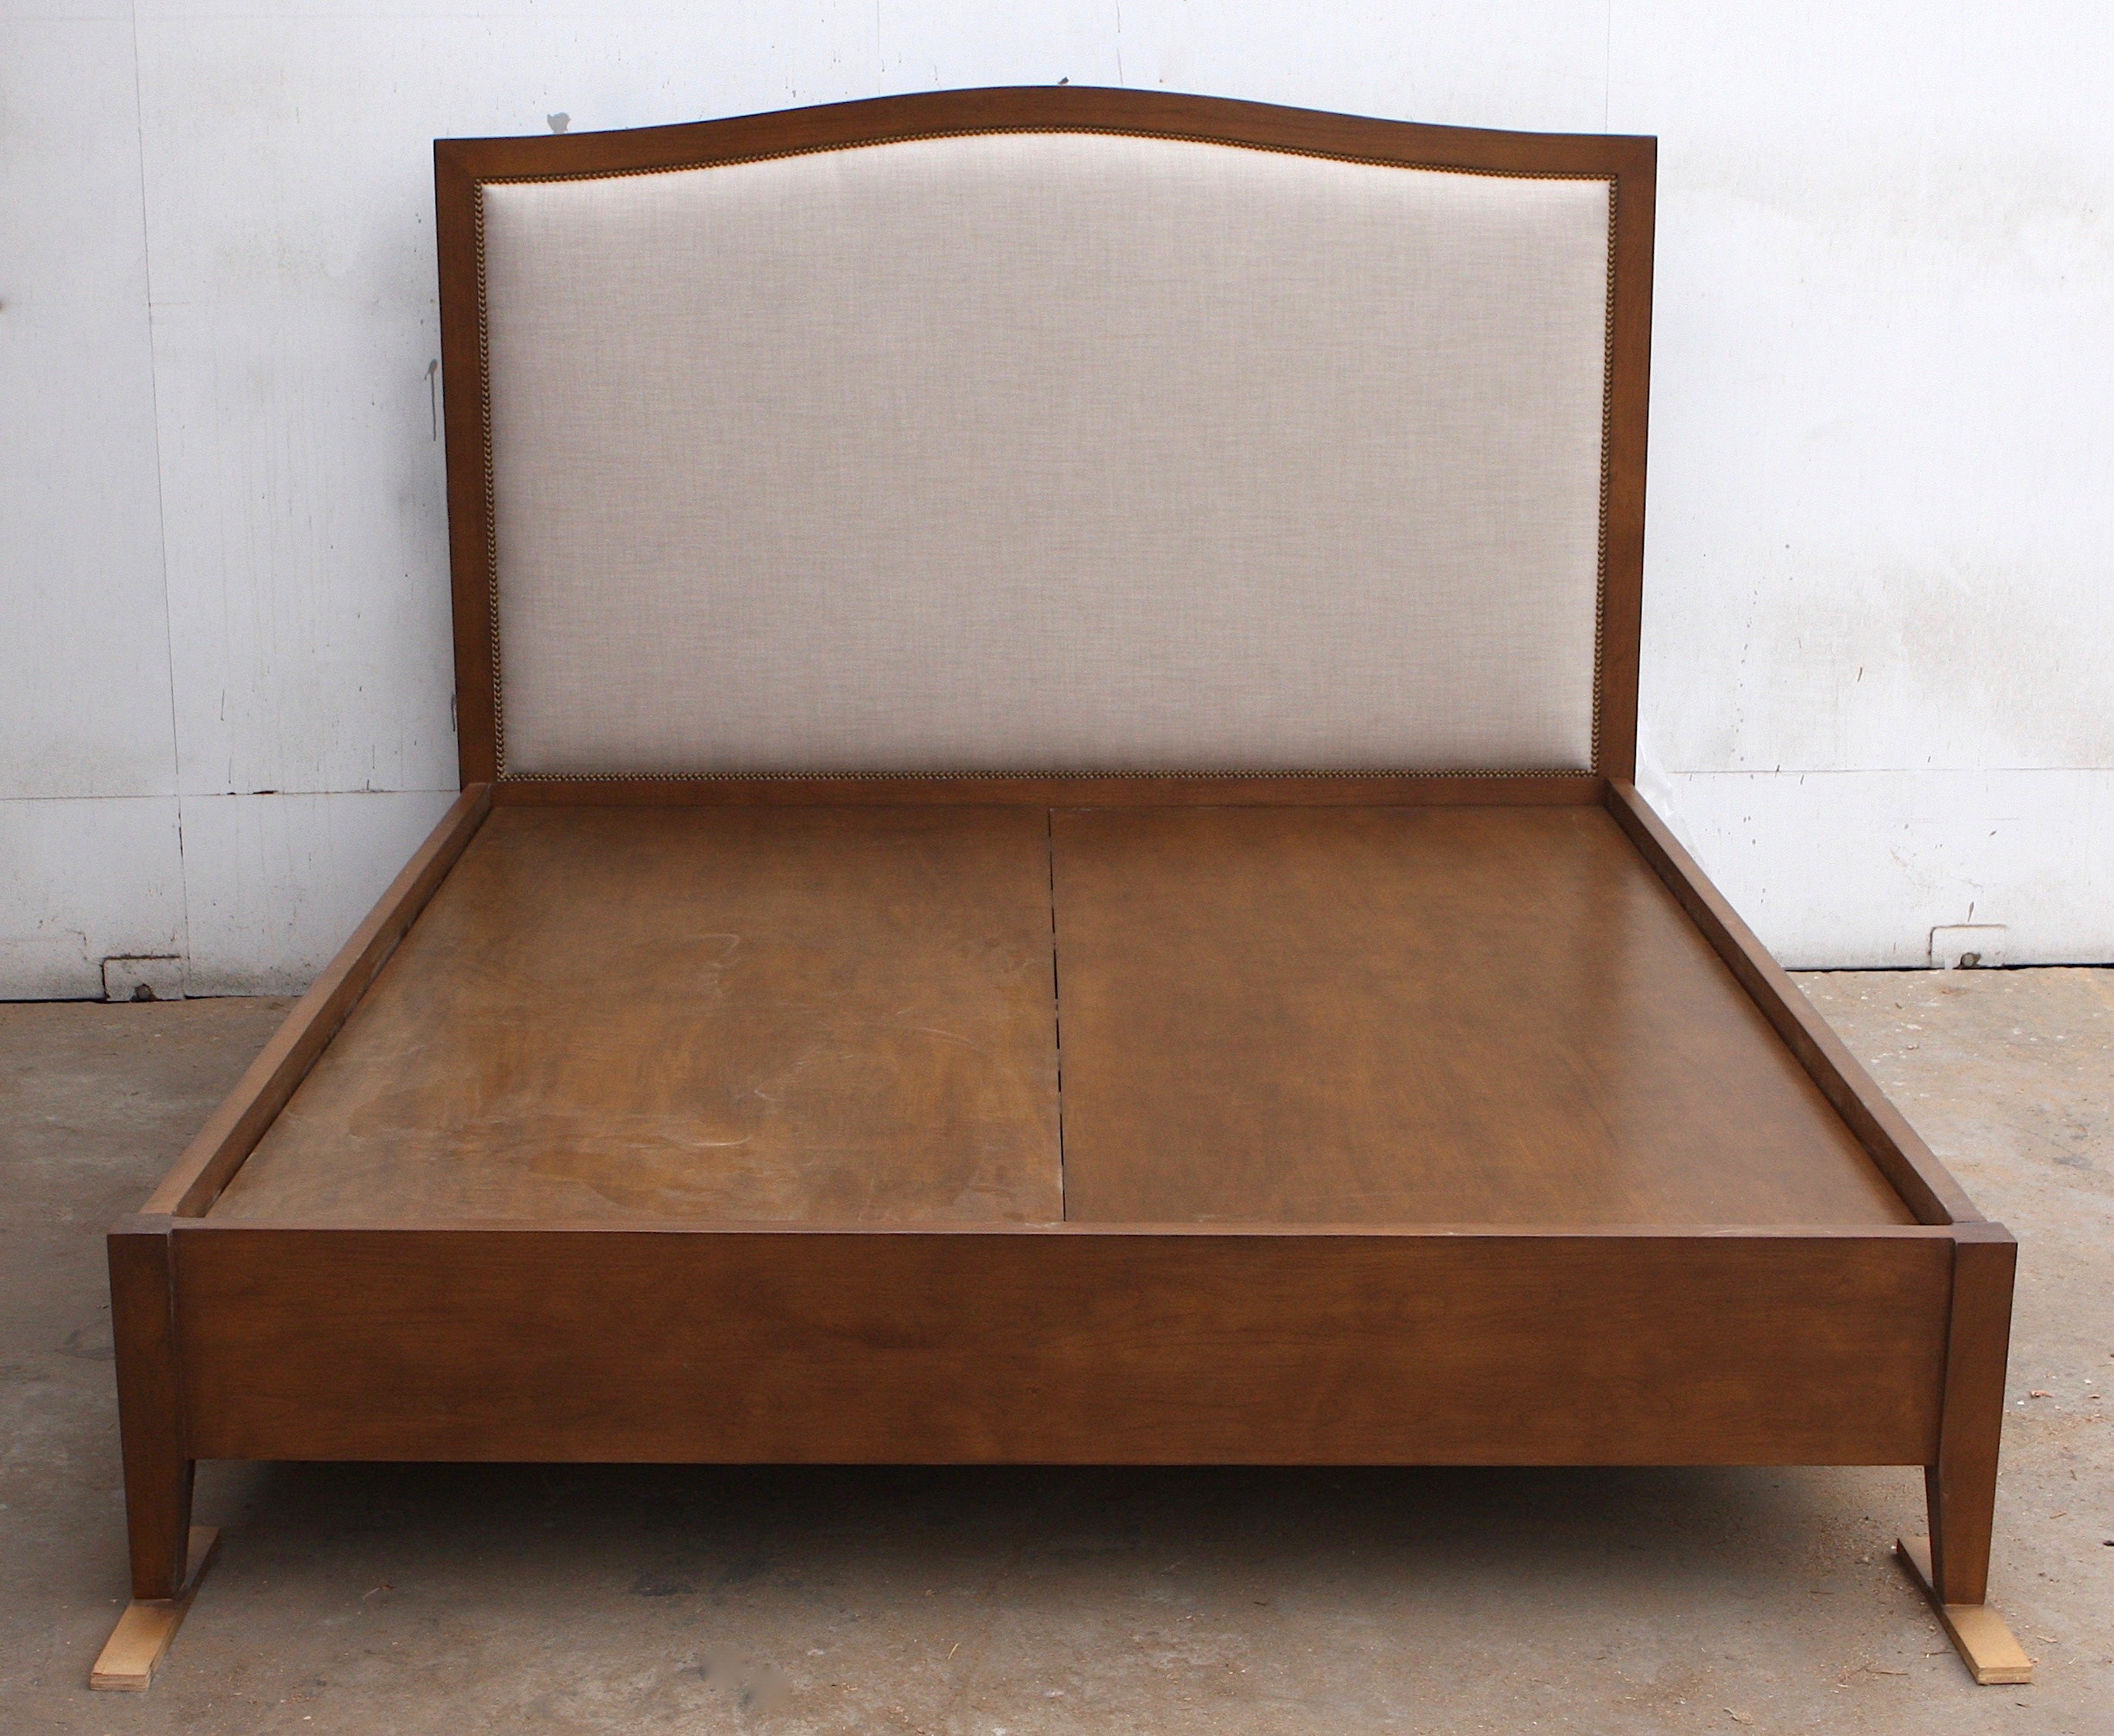 Upholstered Platform Bed With Wood Frame Mortise Tenon